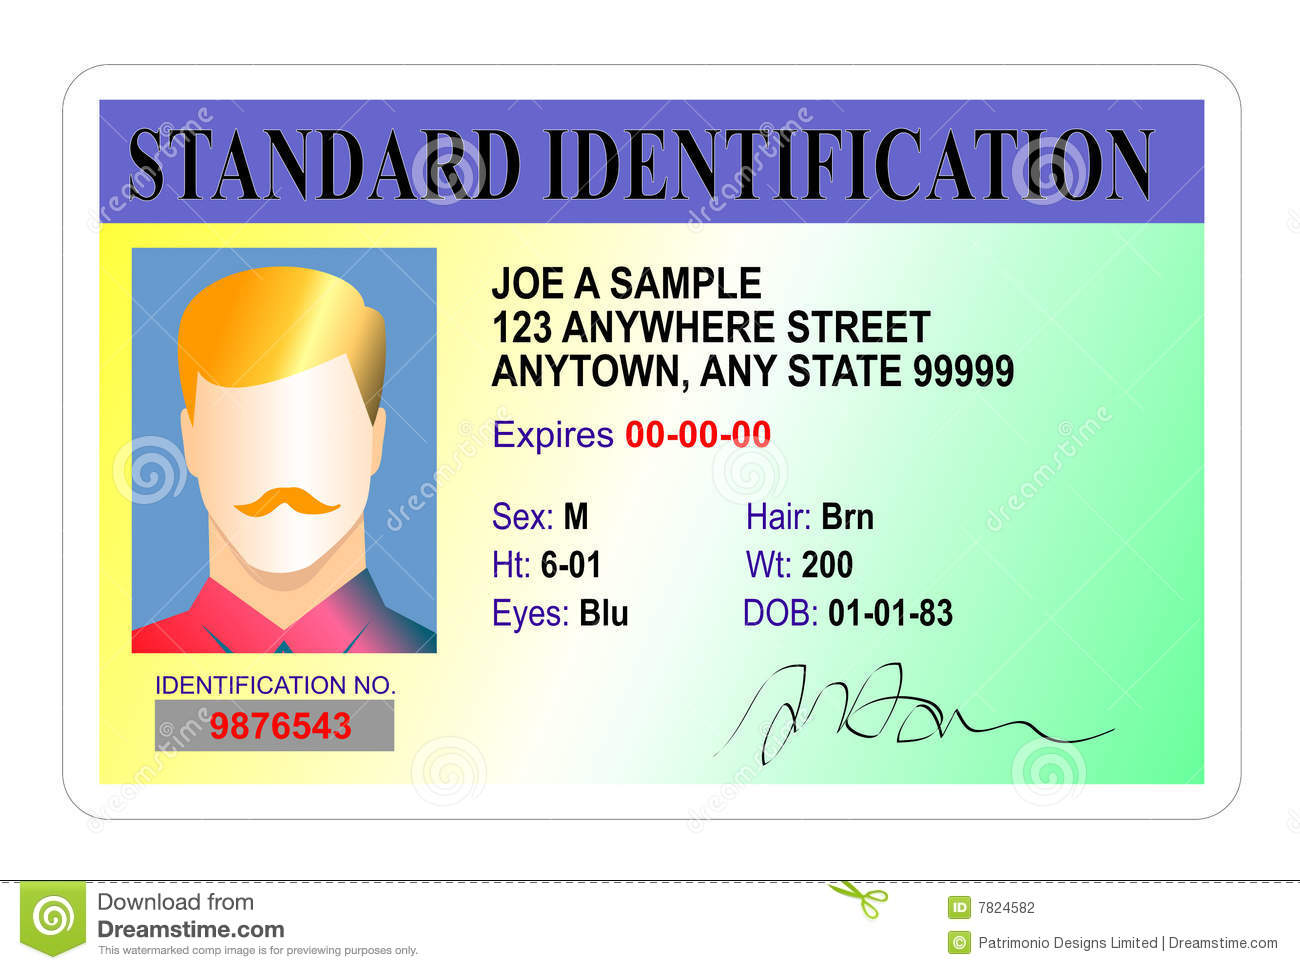 introducing identification cards in britain essay